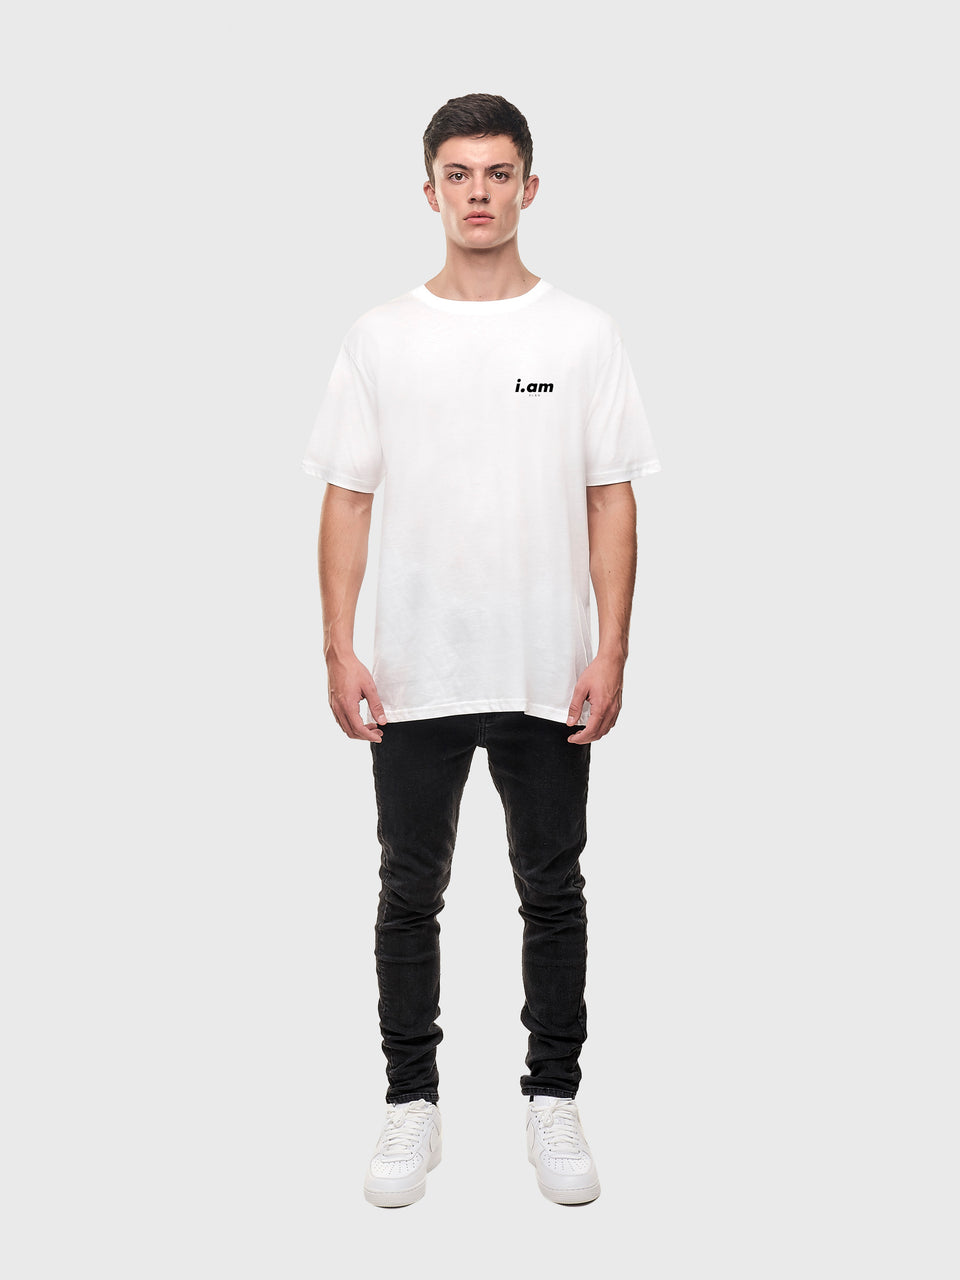 The connect - White / Grey - Unisex T